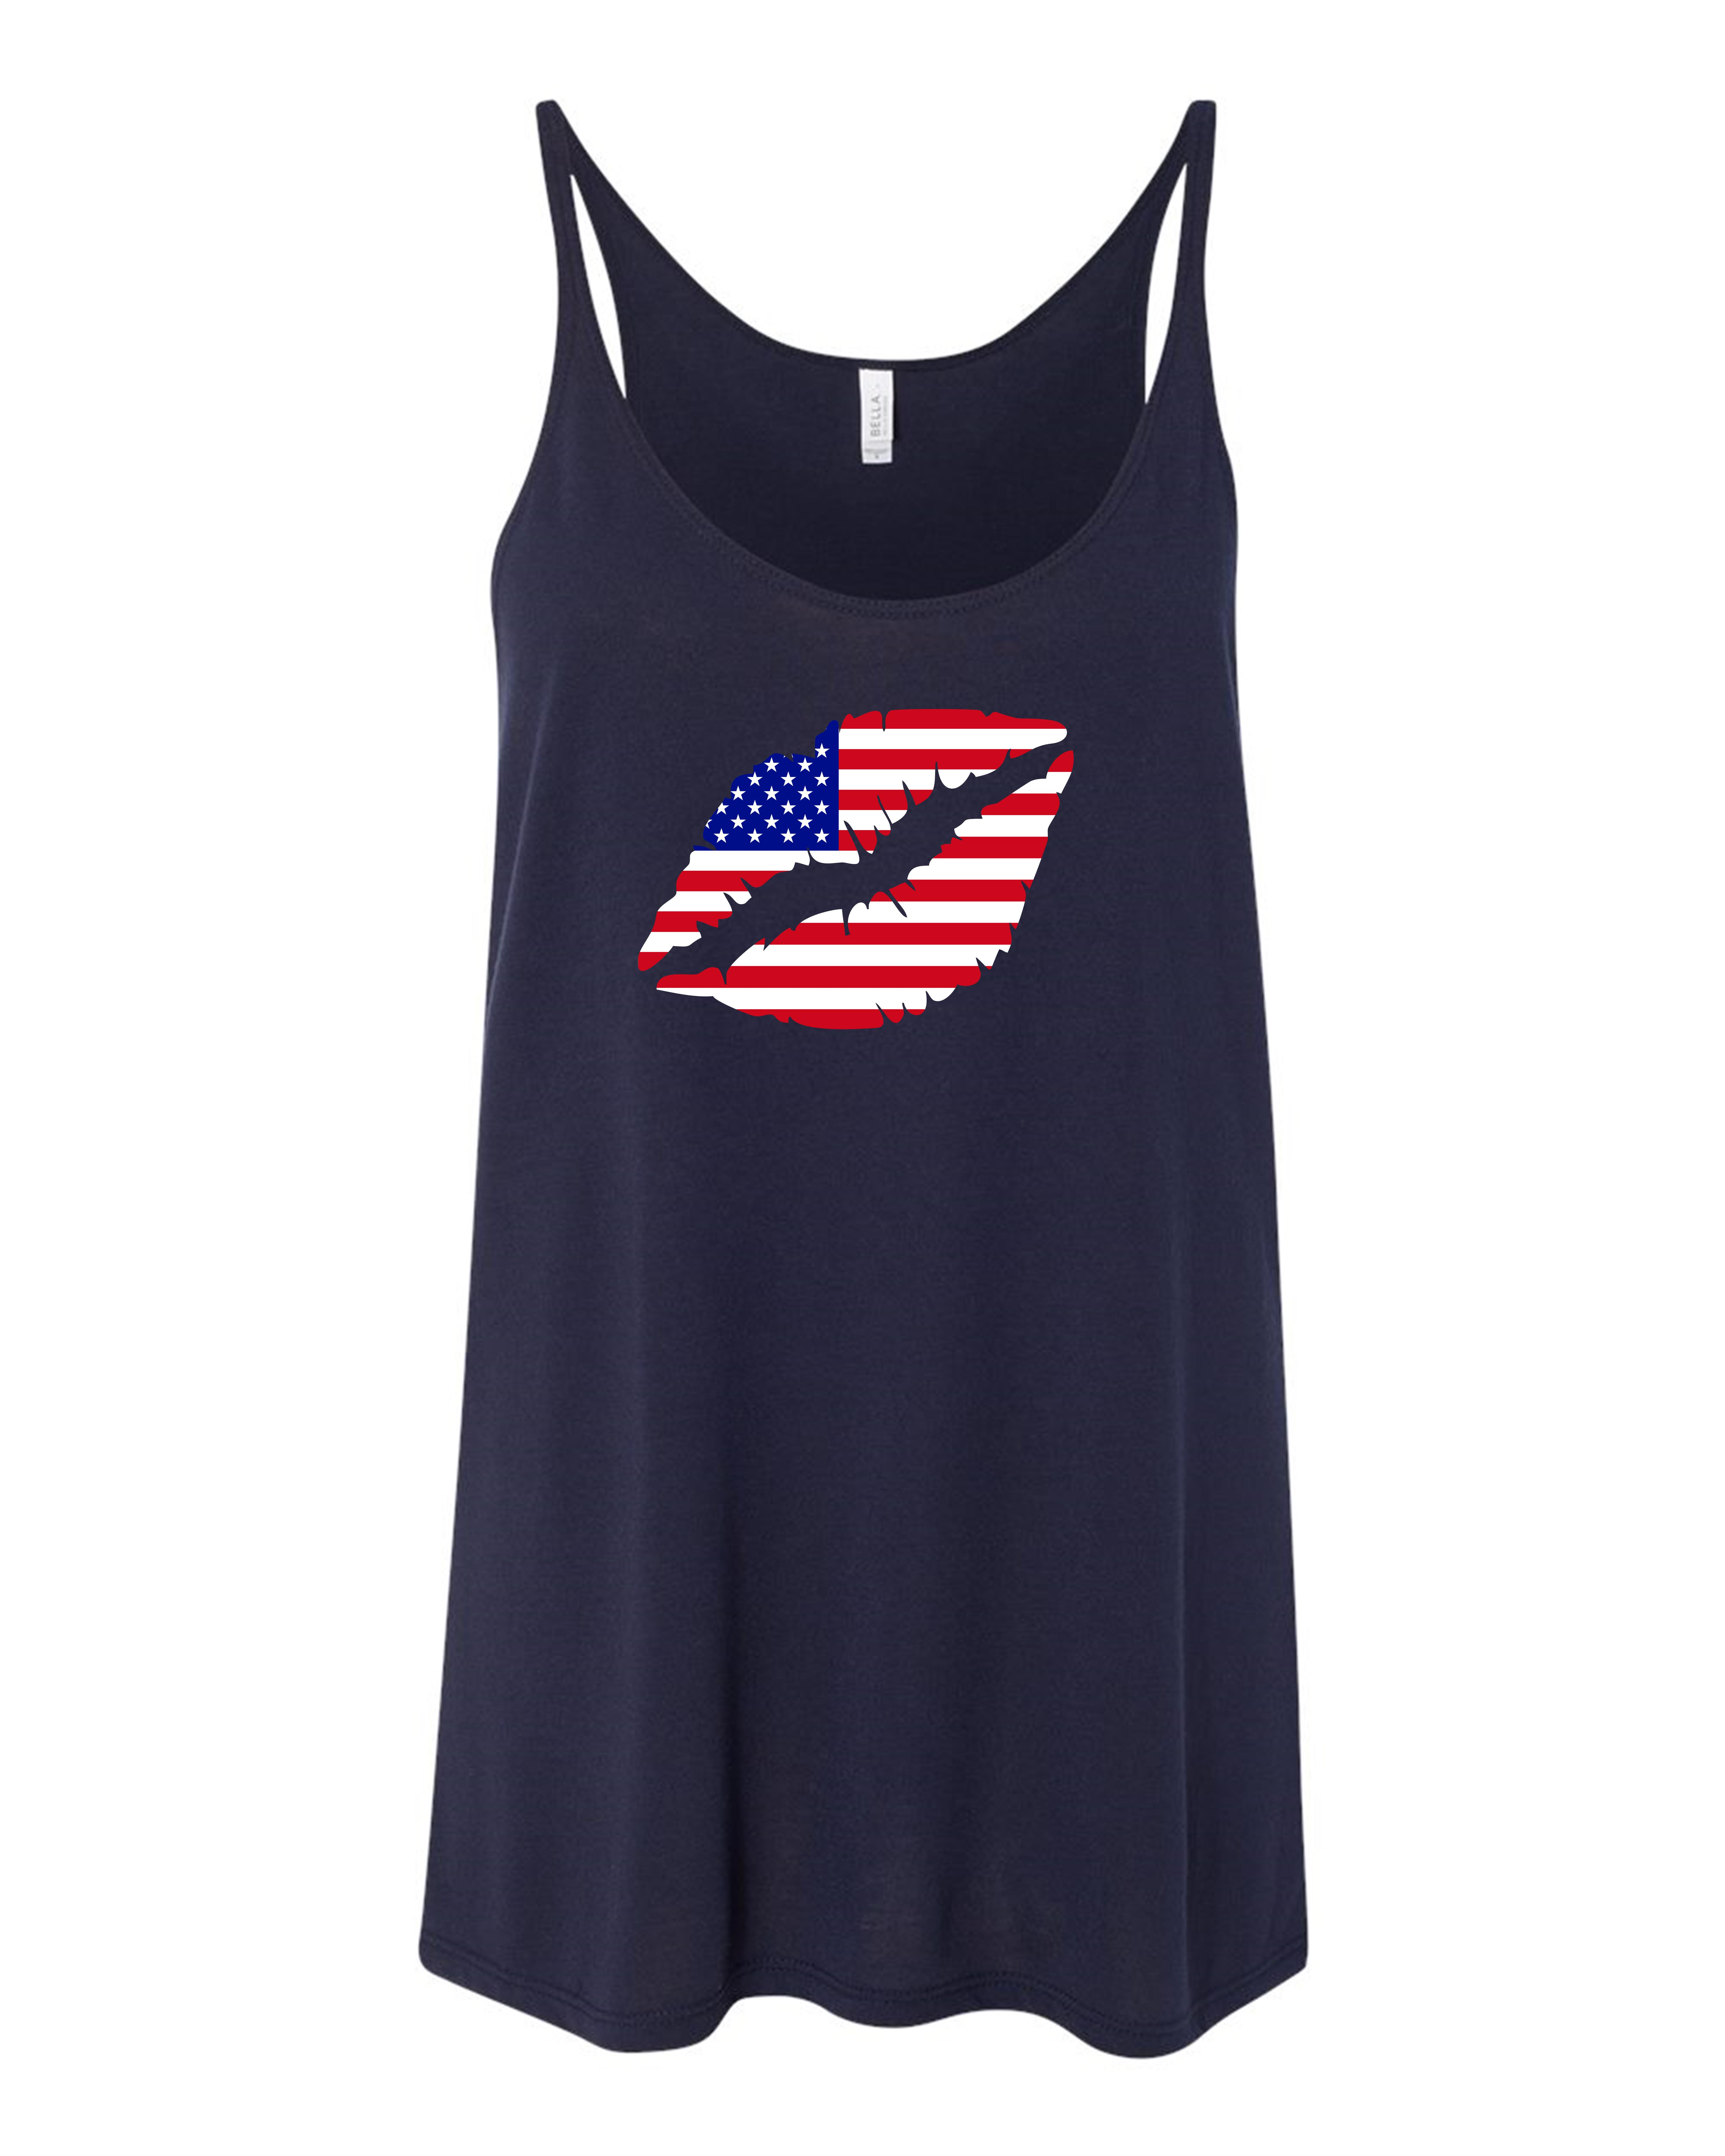 4th of july clothing for women